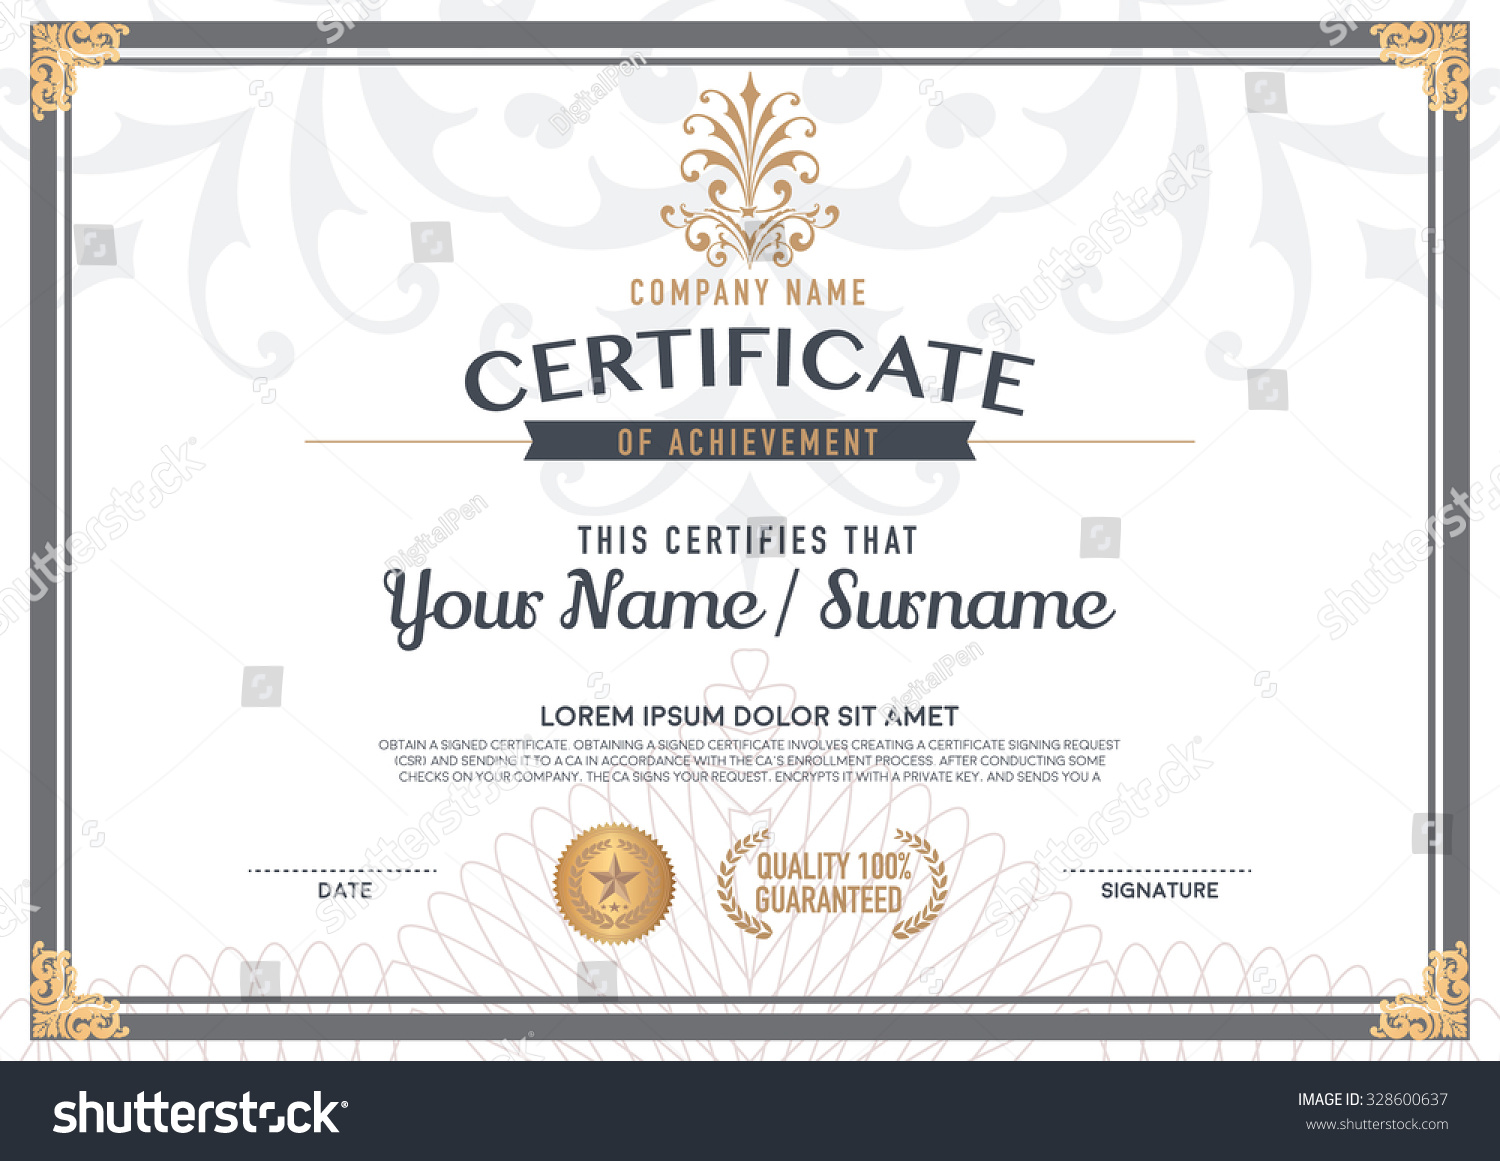 100 stock certificate templates graduation certificate stock certificate templates vector company certificate templates payroll analyst cover letter yadclub Gallery